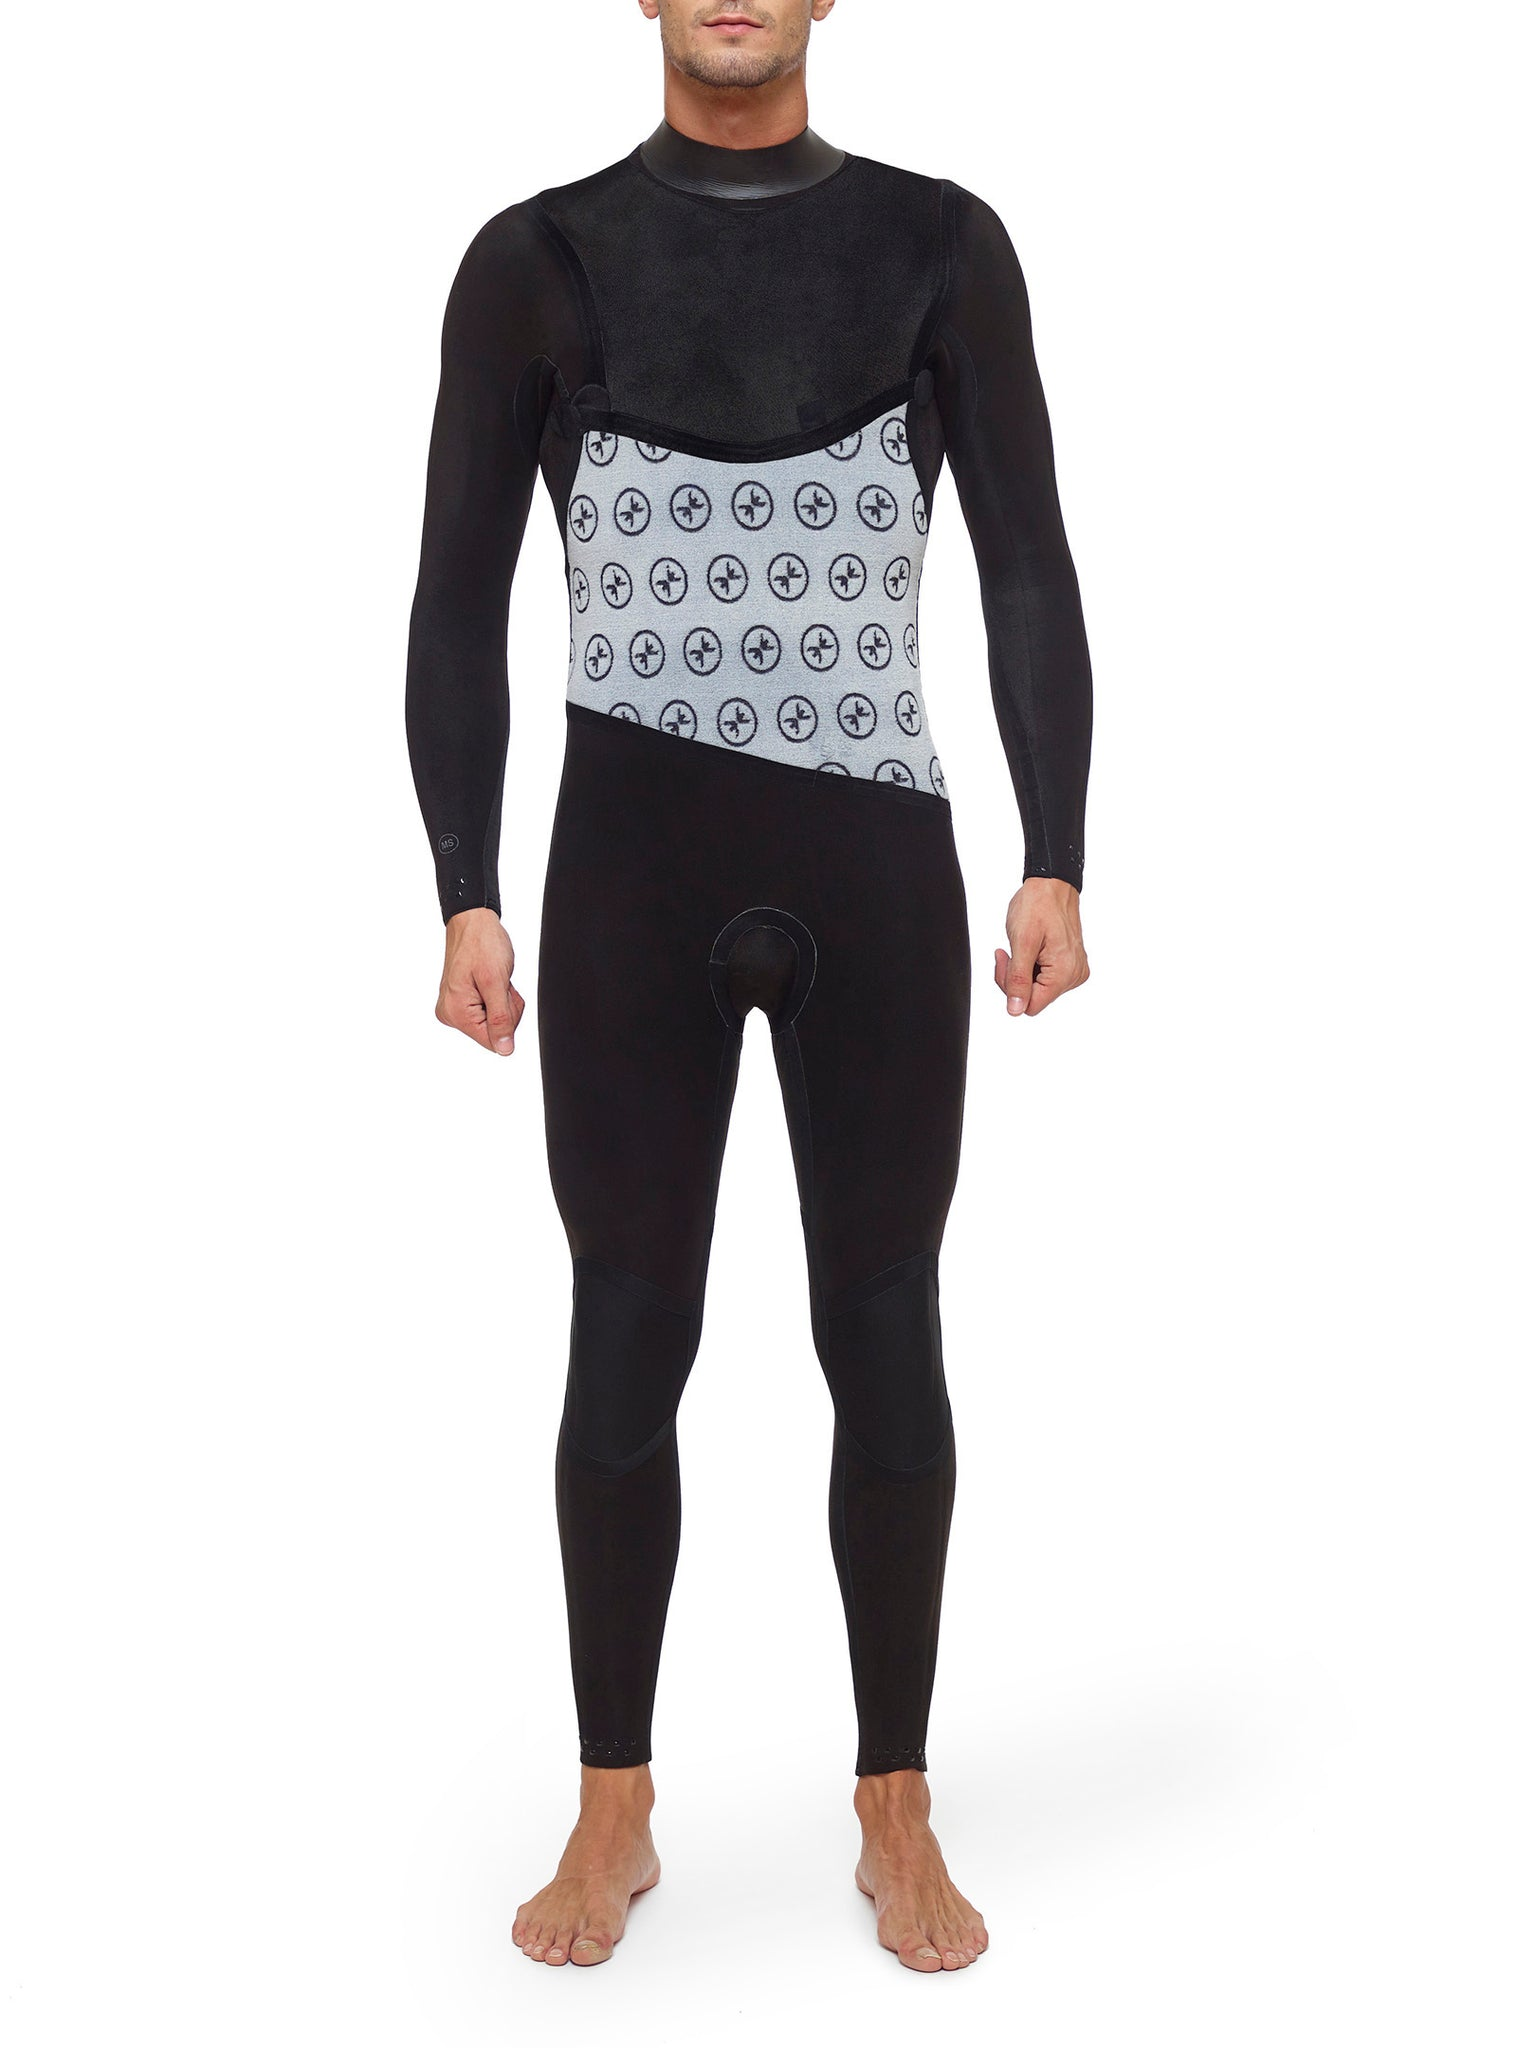 Wetsuit Man Premium 4/3 Chest Zip Black